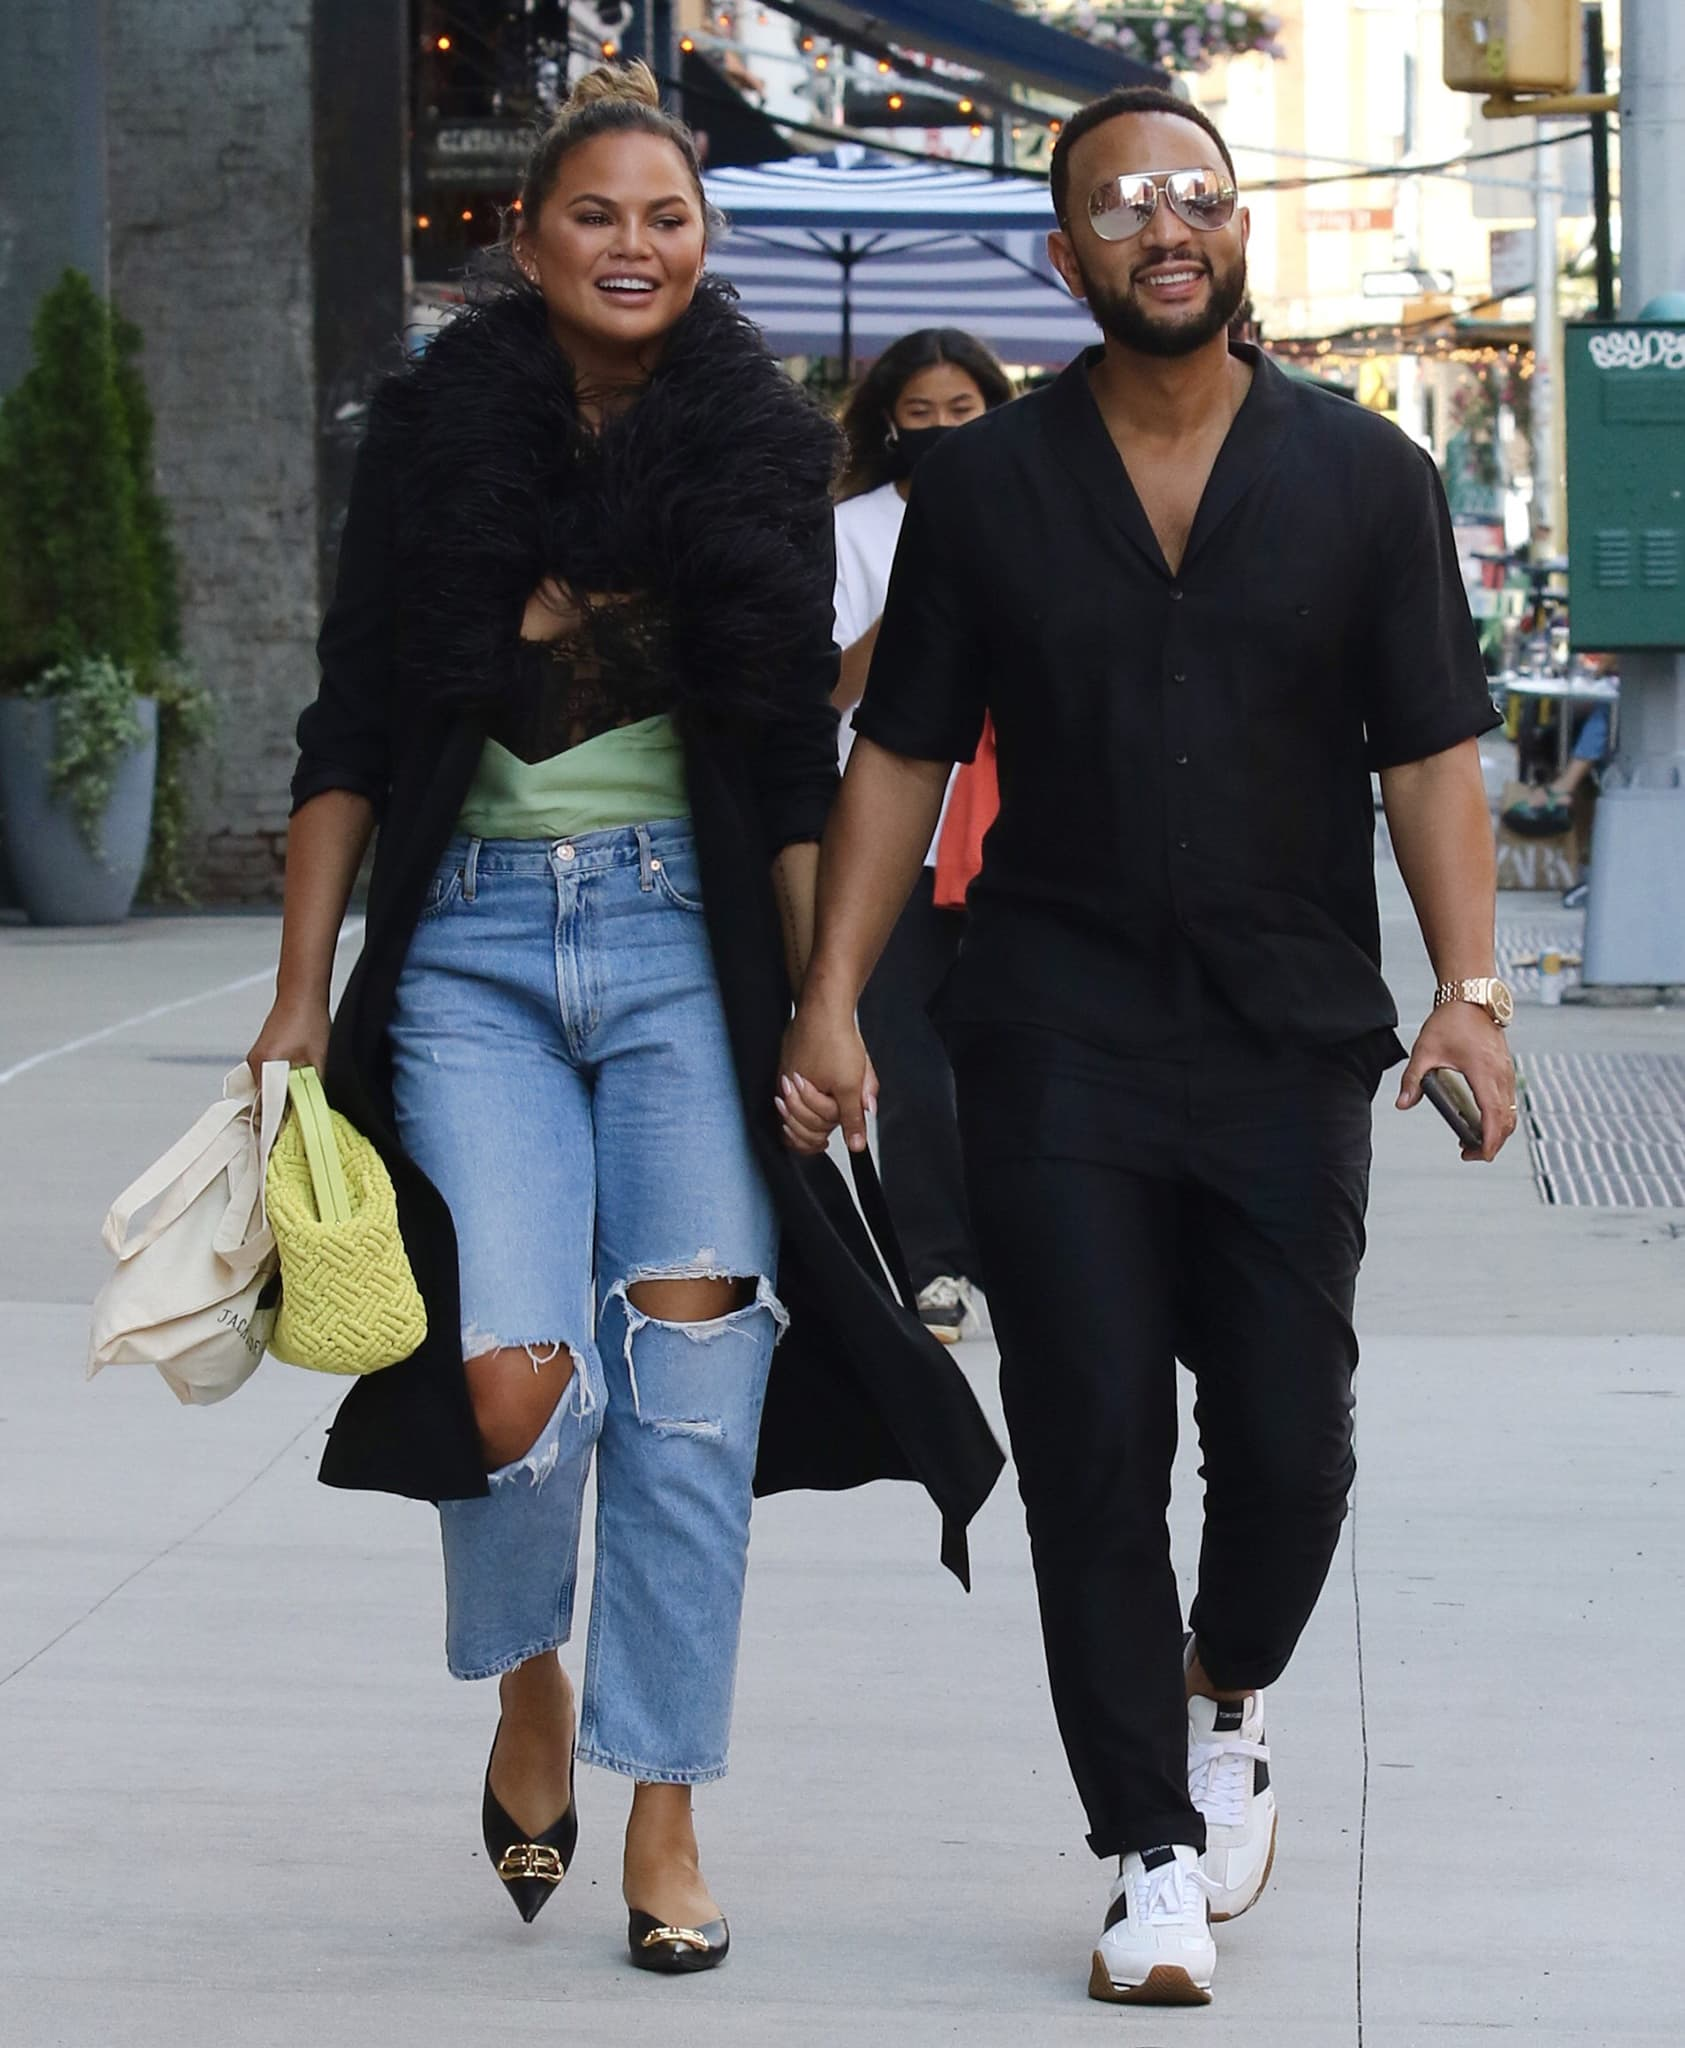 Chrissy Teigen and John Legend on a lunch date in New York City